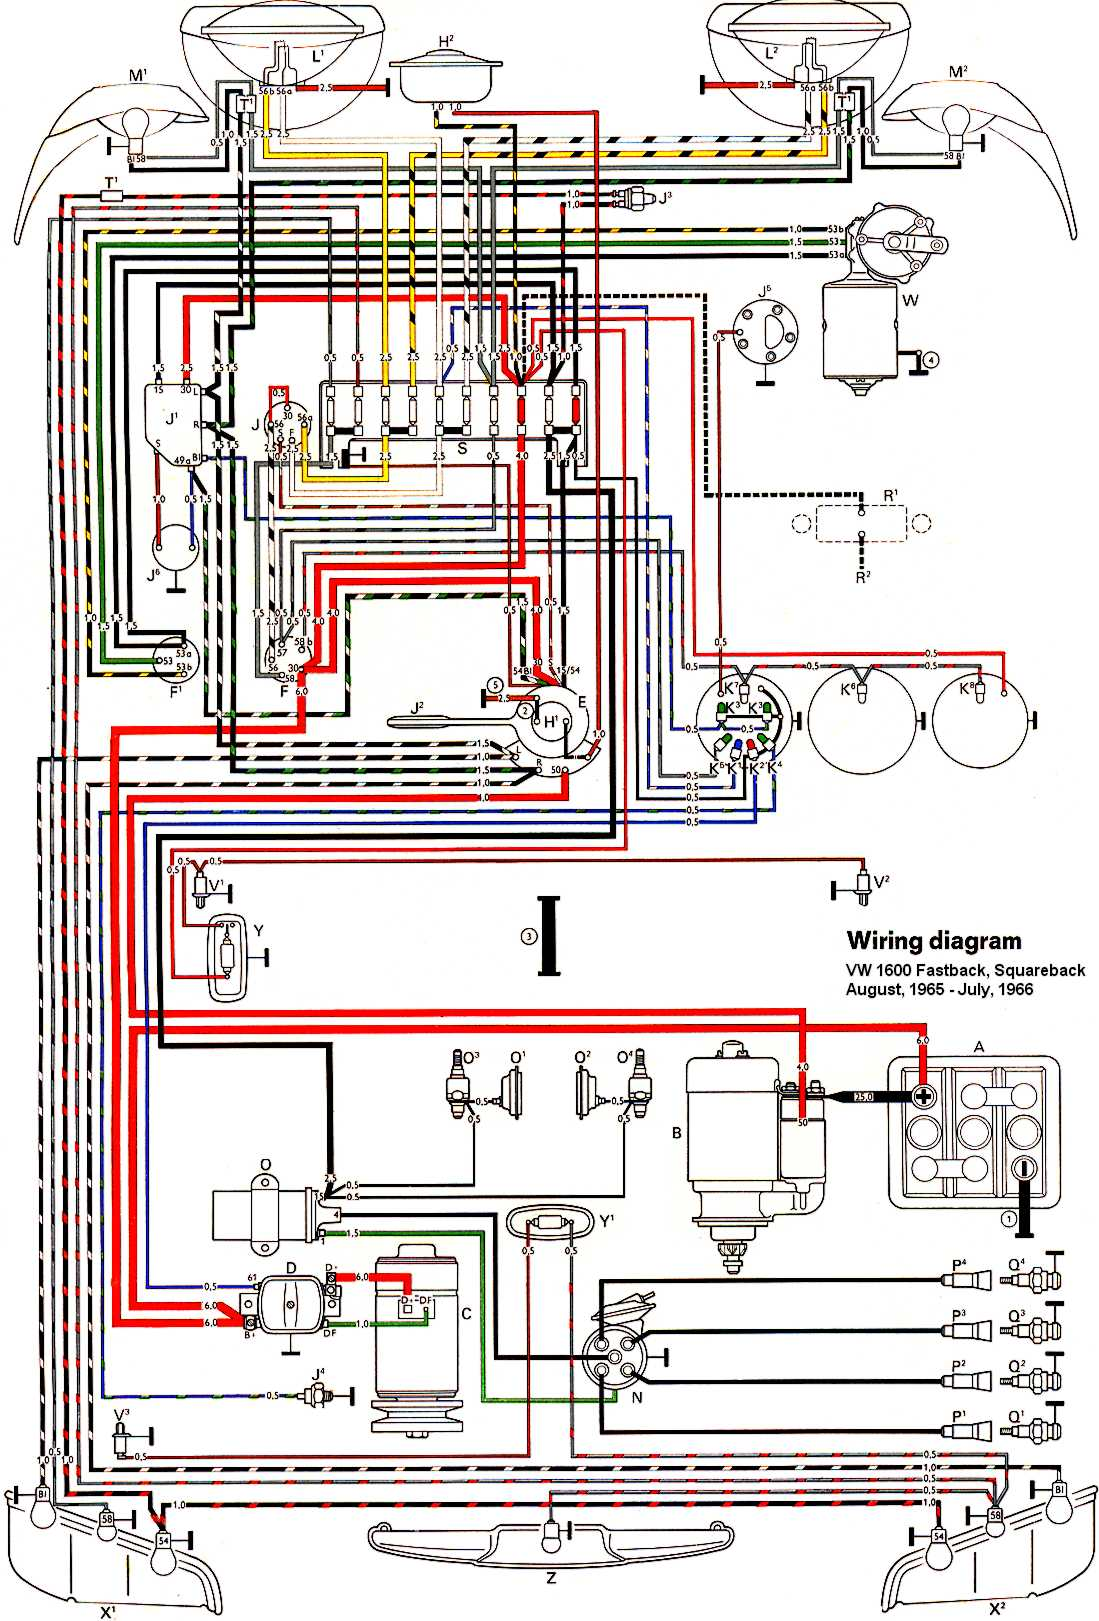 Esquemas Electricos moreover 1970 Volkswagen Beetle Wiring Diagram moreover Vw Bug Battery Drain as well Wiringt3 also Viewtopic. on 1974 vw super beetle wiring diagram